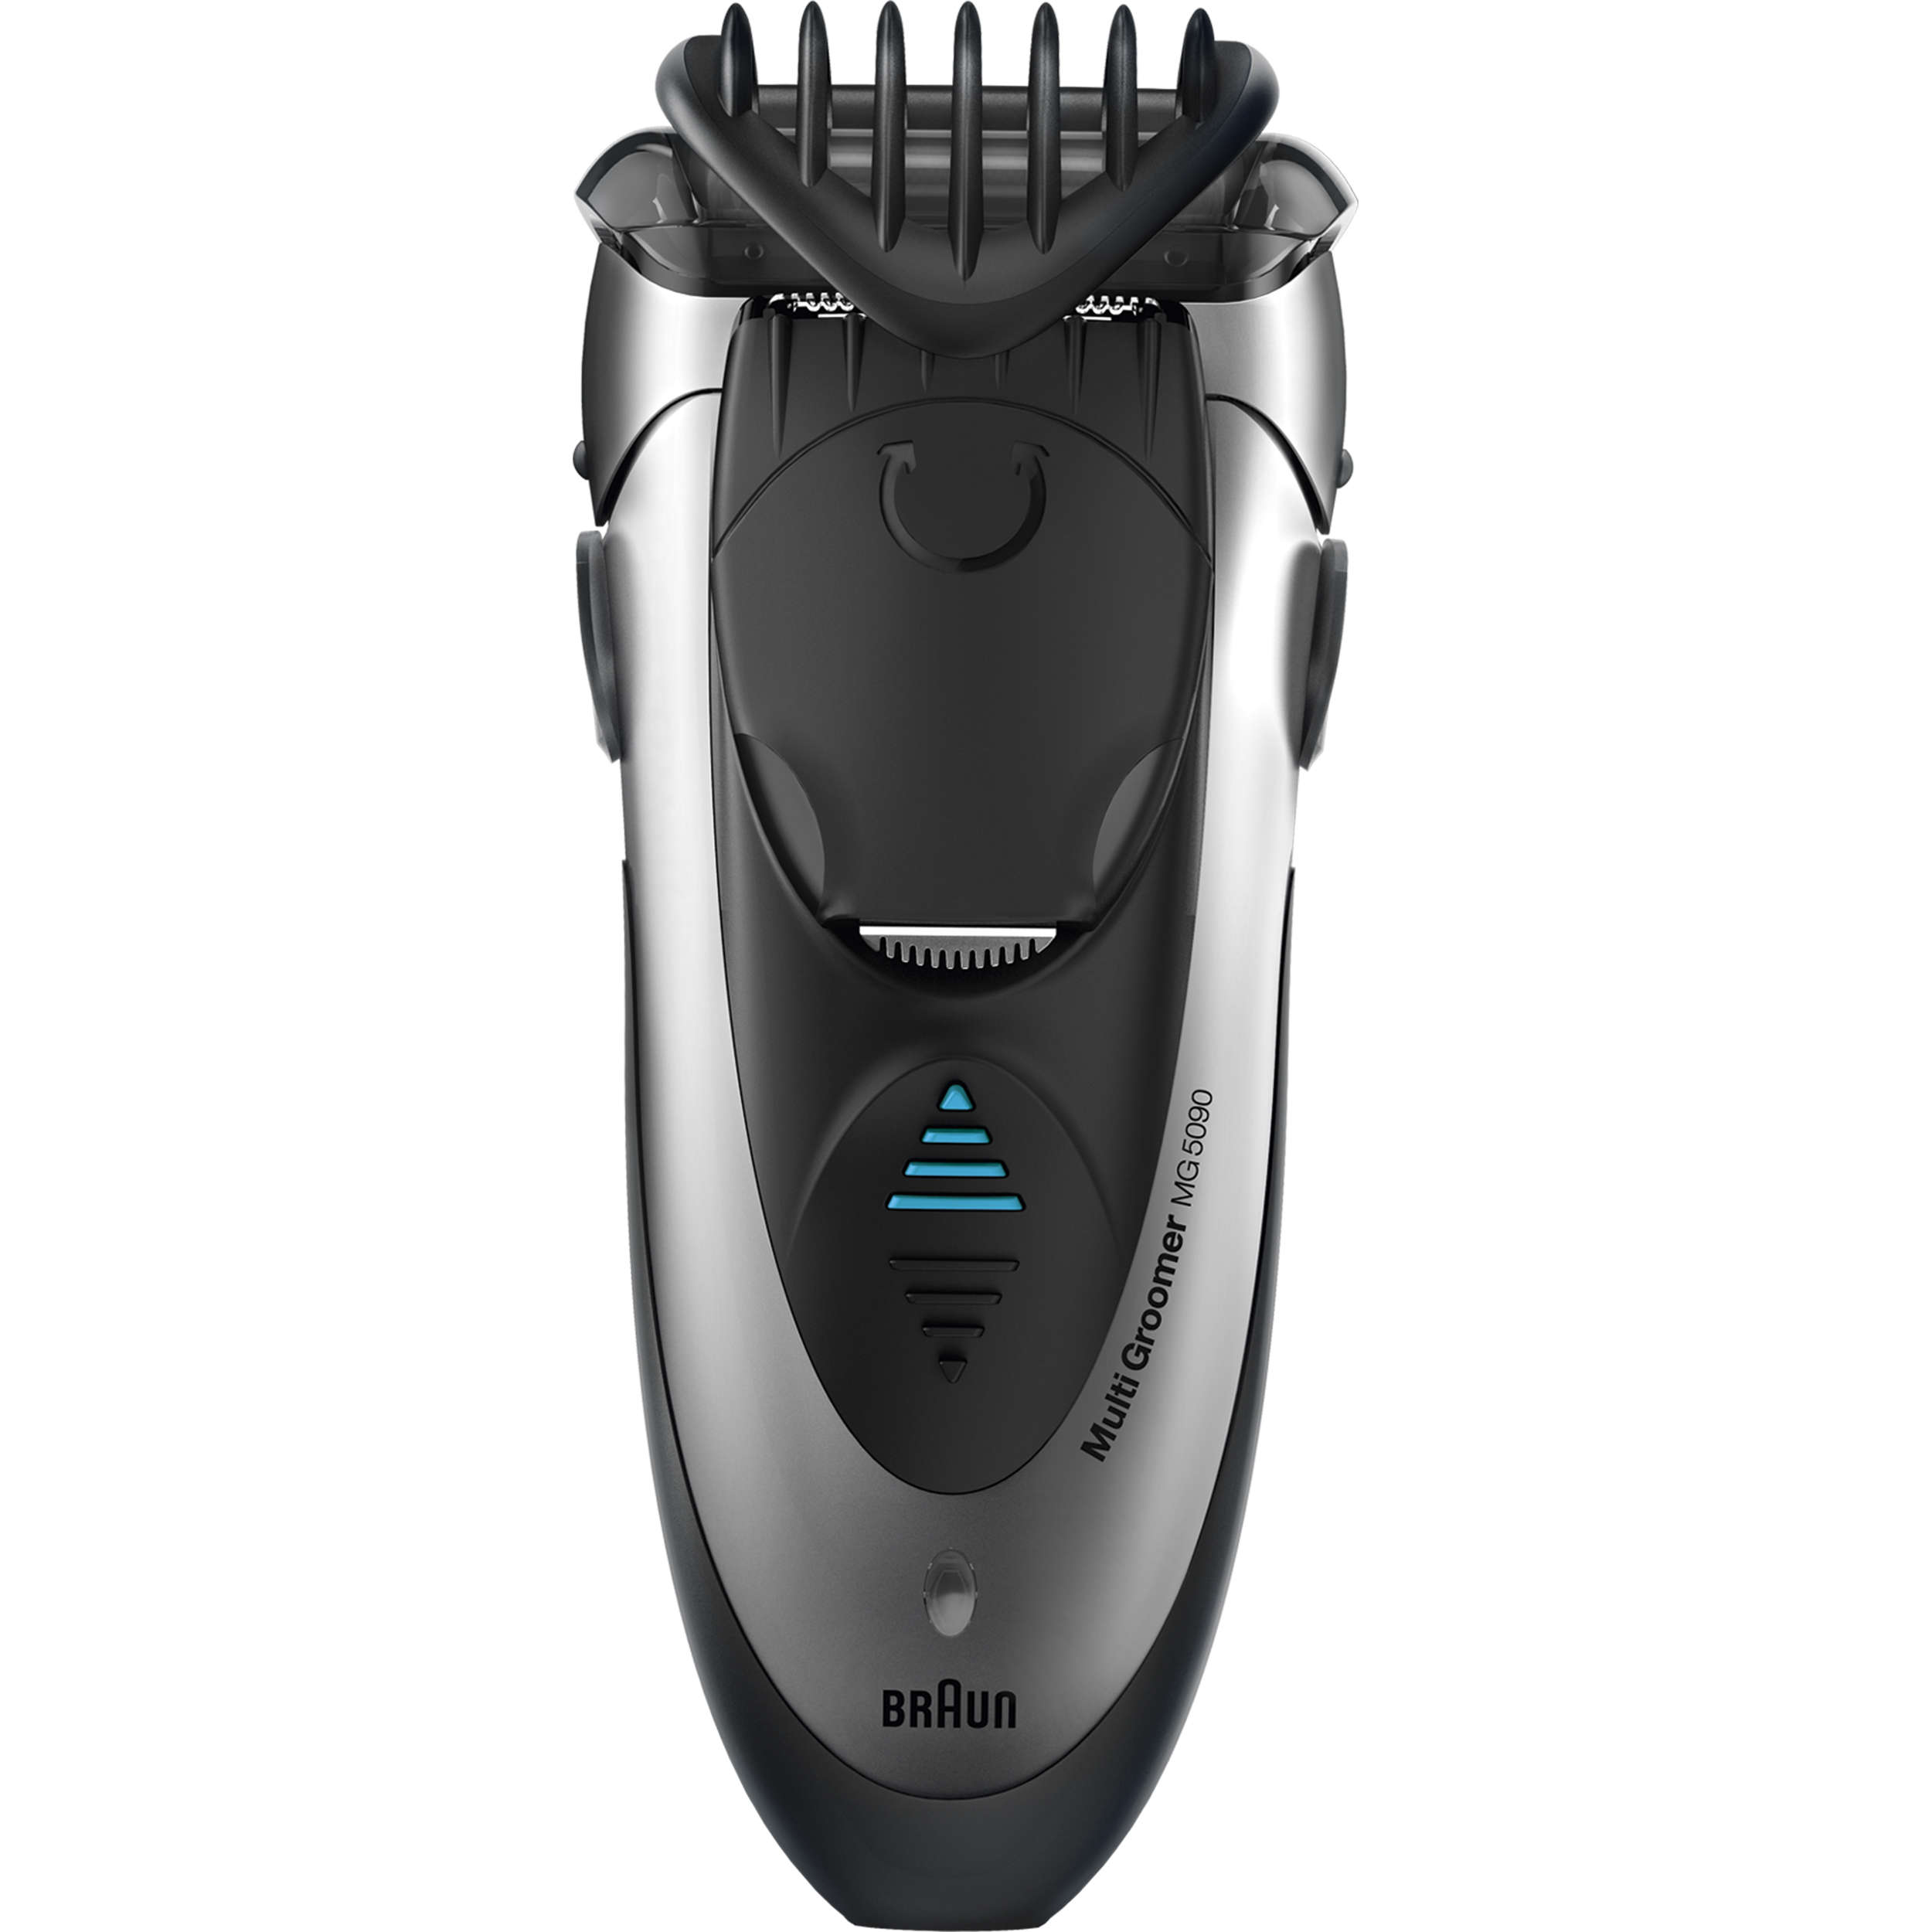 Braun Wet & Dry Multi Groomer Shave MG5090 ($10 Rebate Available)